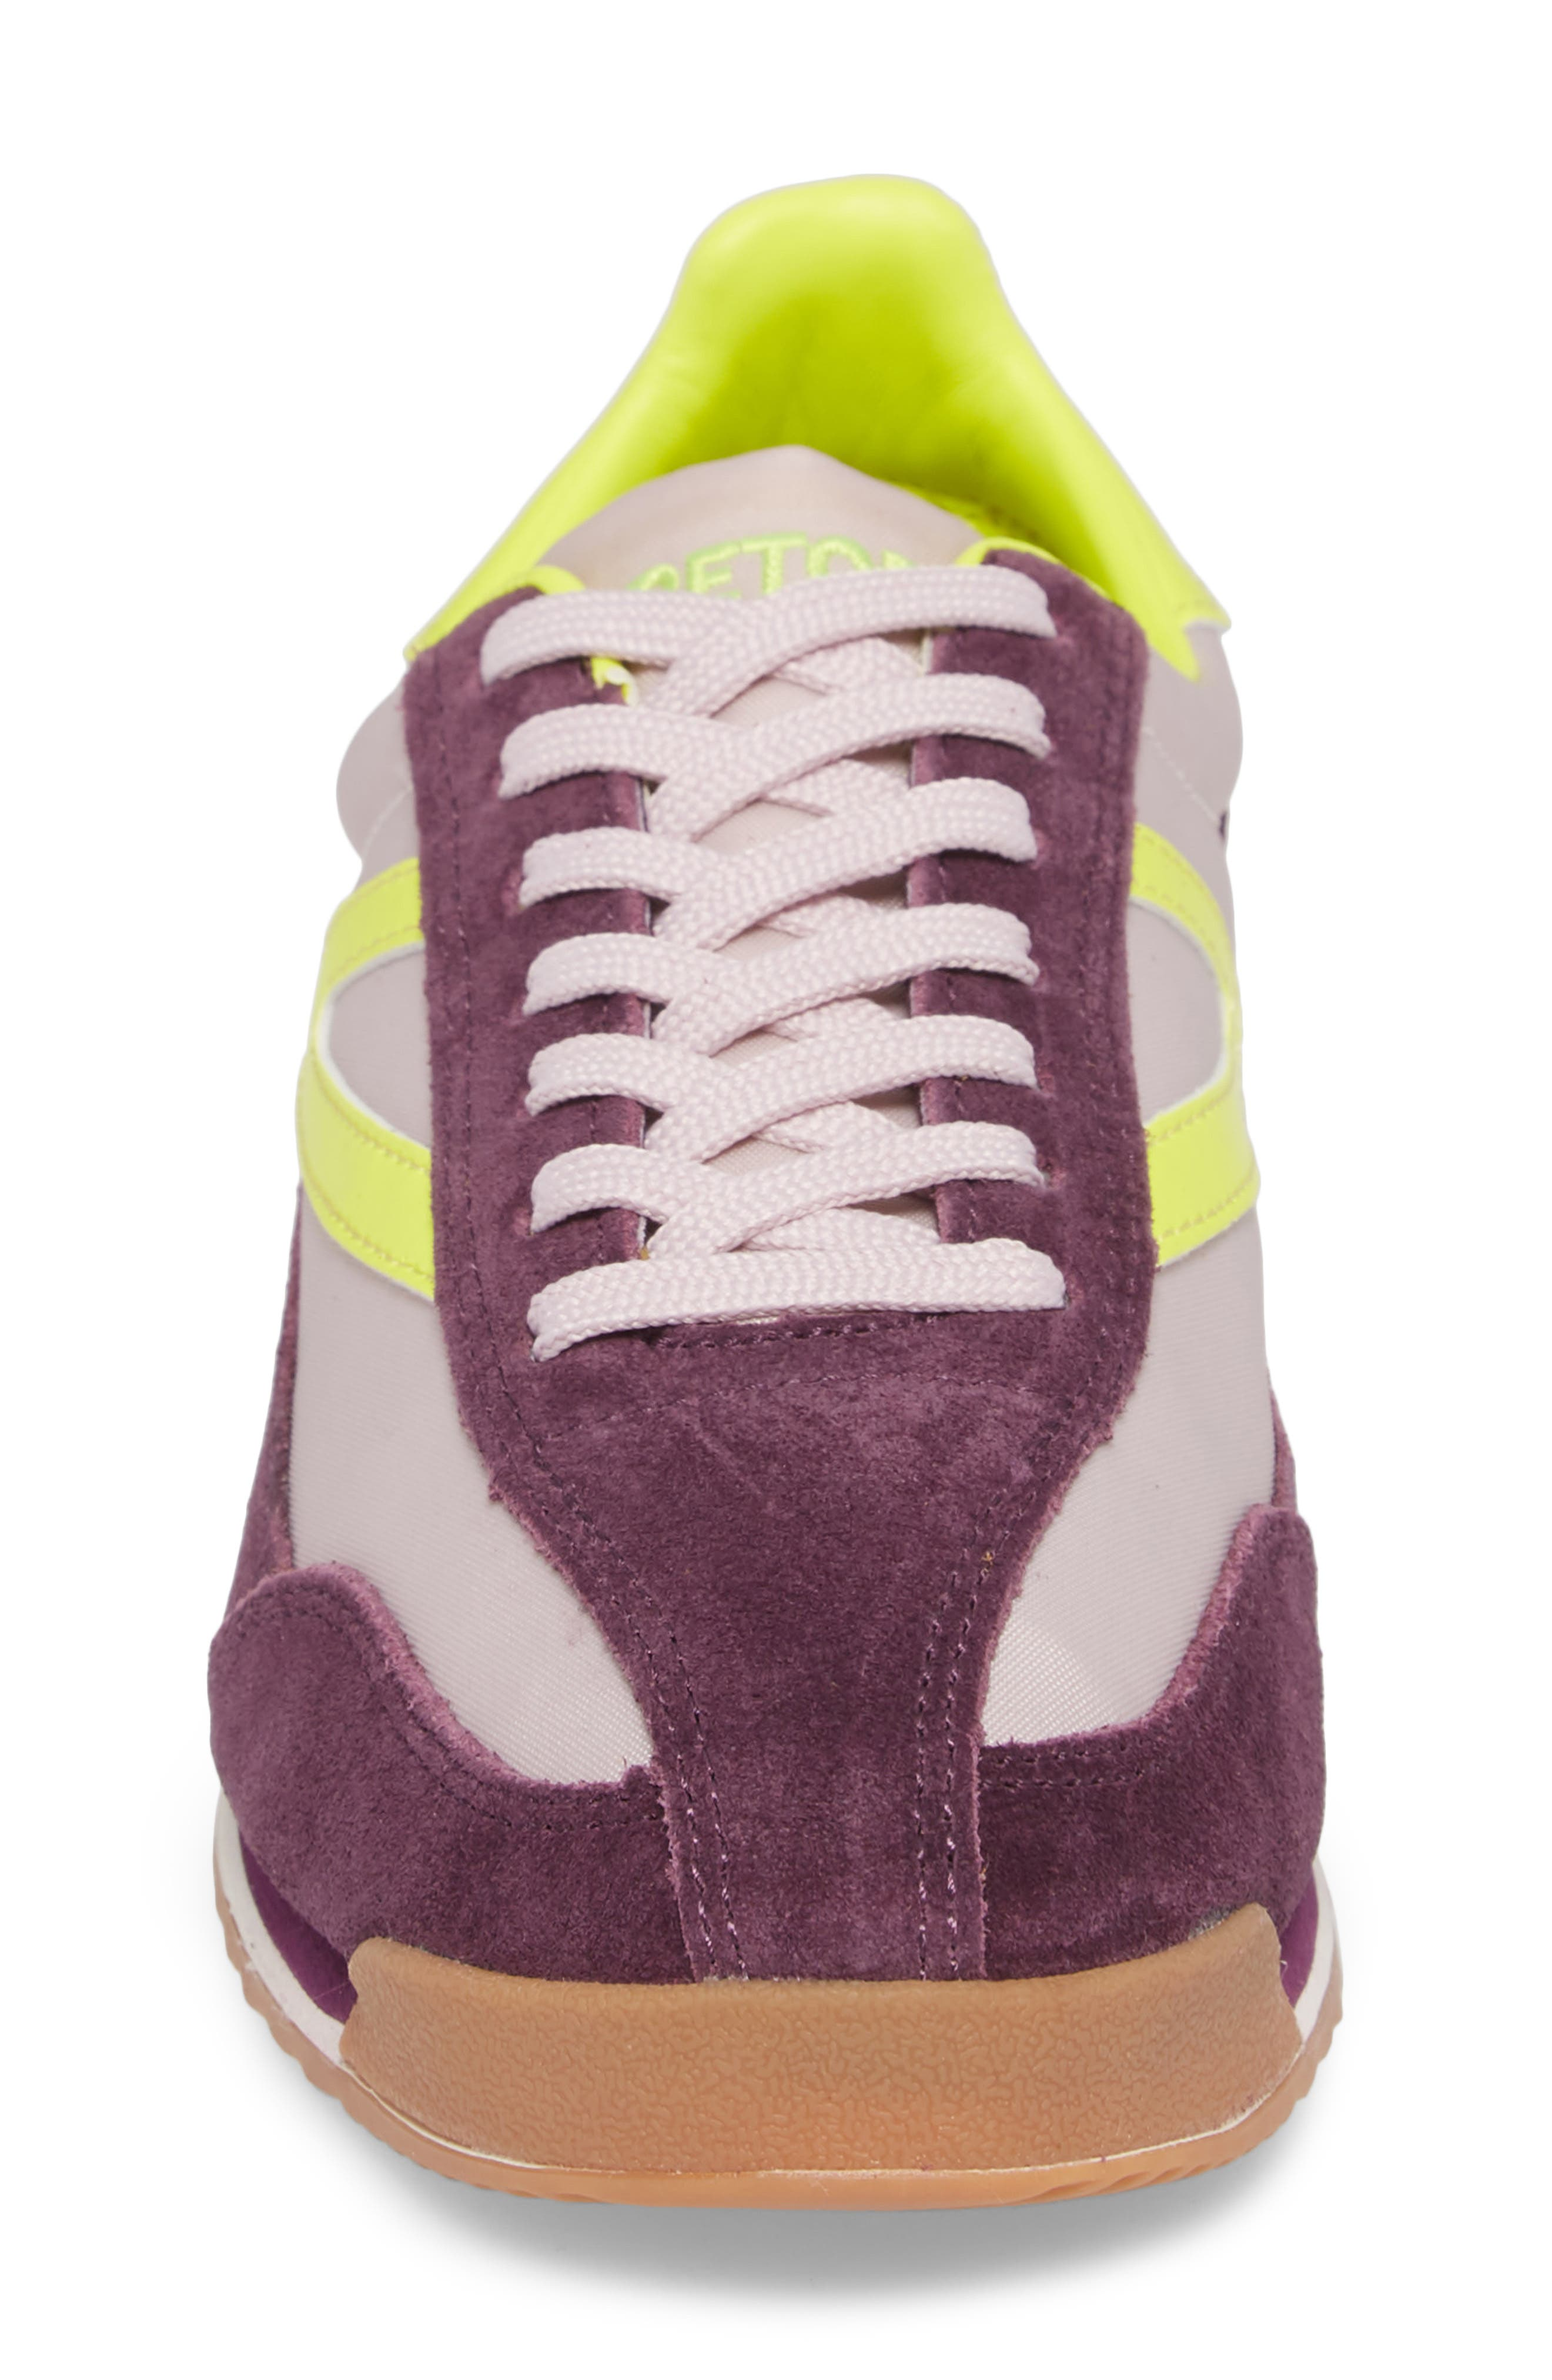 Rawlins 2 Sneaker,                             Alternate thumbnail 4, color,                             EGGPLANT/ SUMMER LILAC/ YELLOW